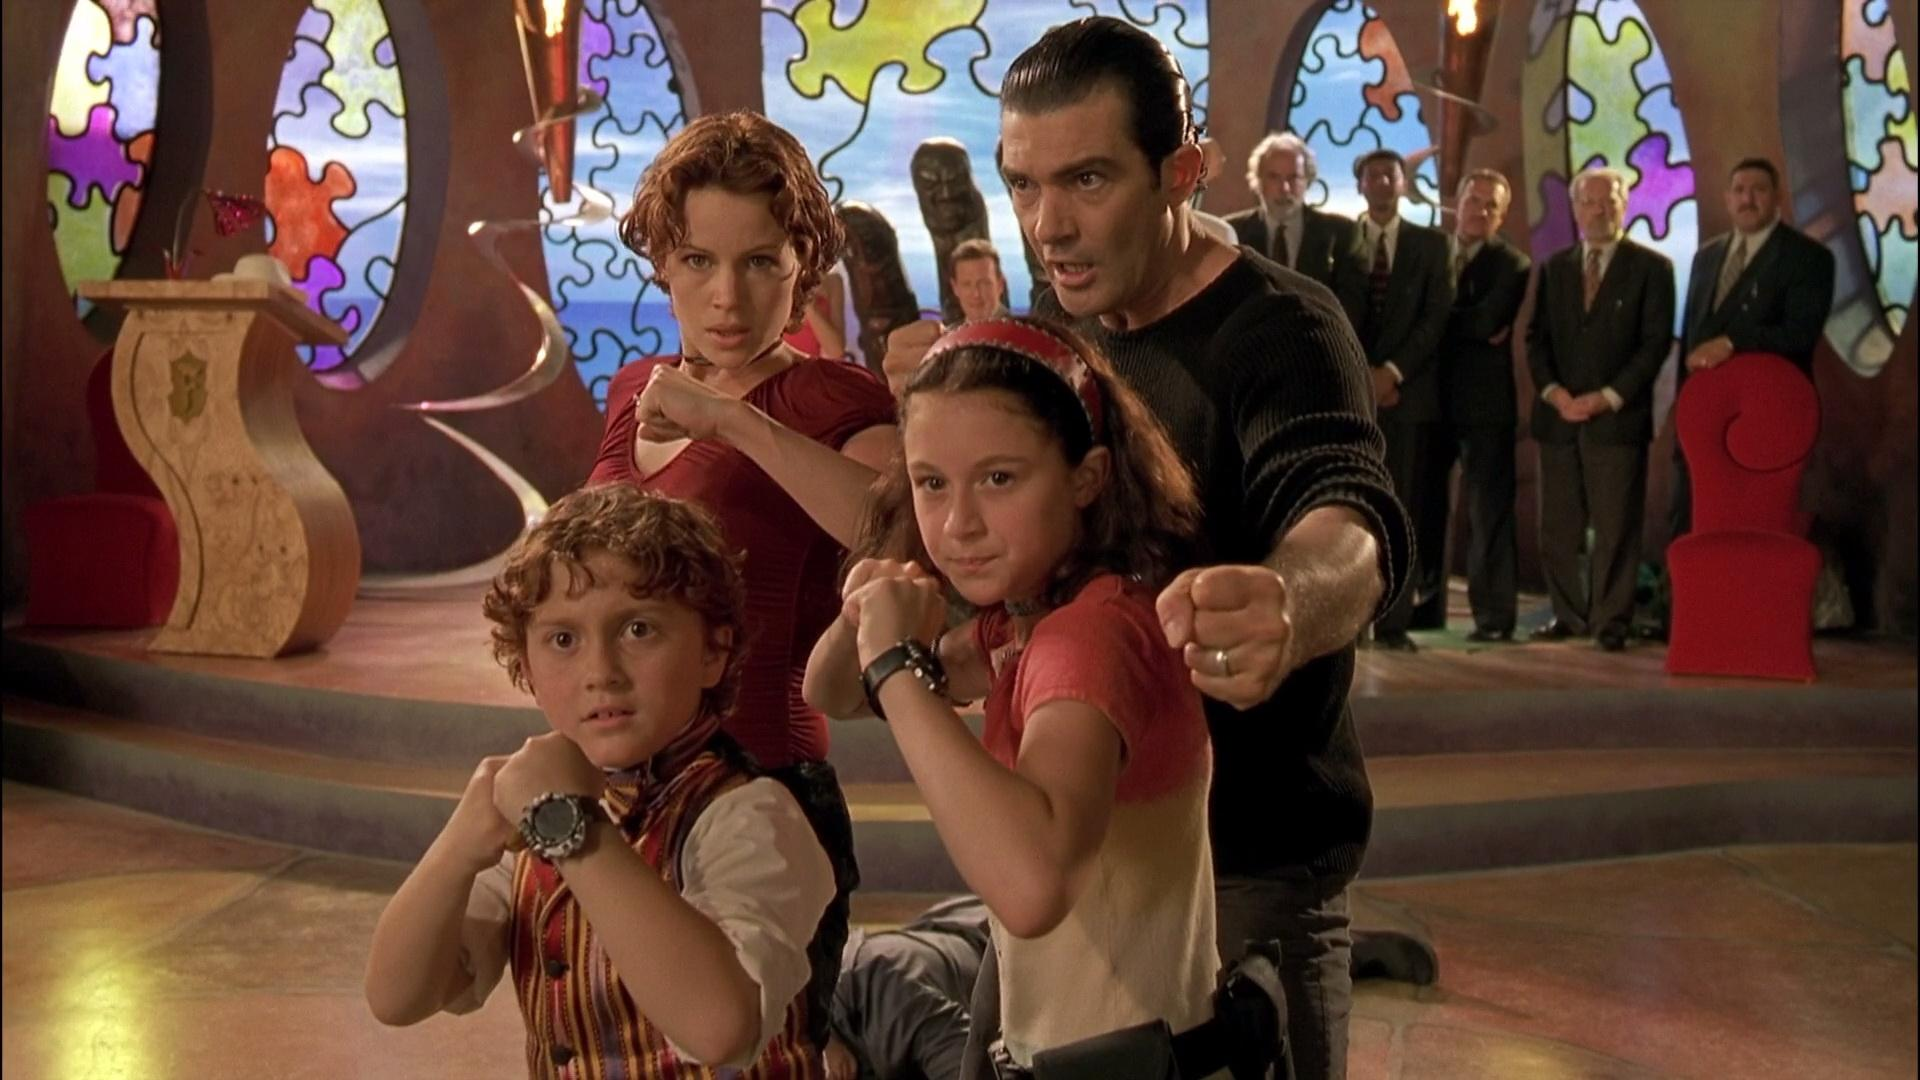 SPY KIDS (2001) © Dimension Films